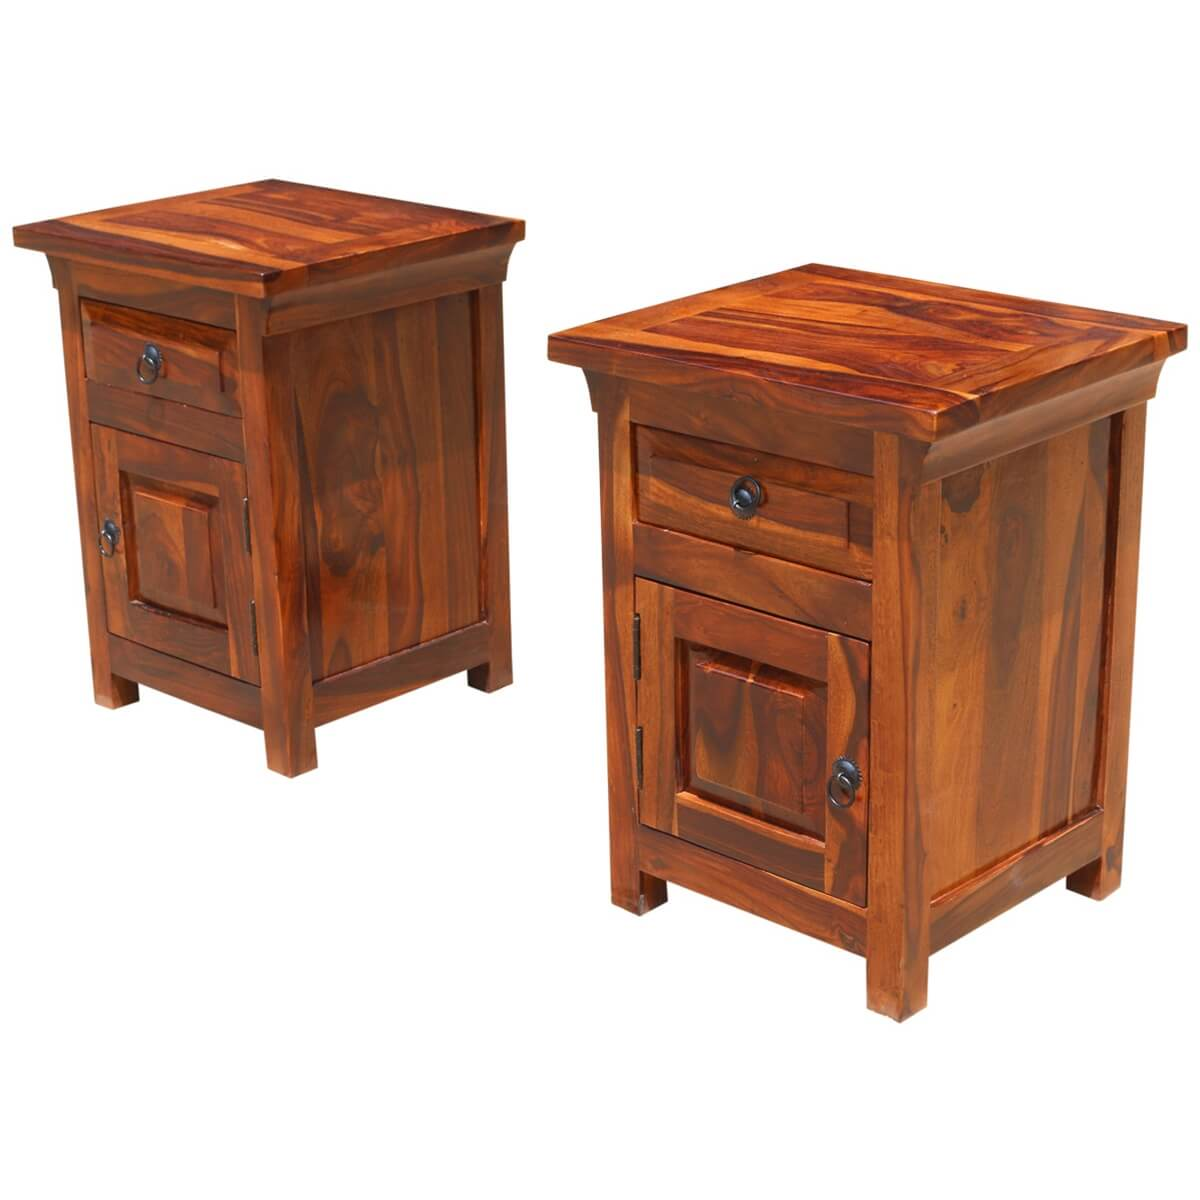 Rustic farmhouse solid wood nightstand end table cabinets for Solid wood farmhouse table